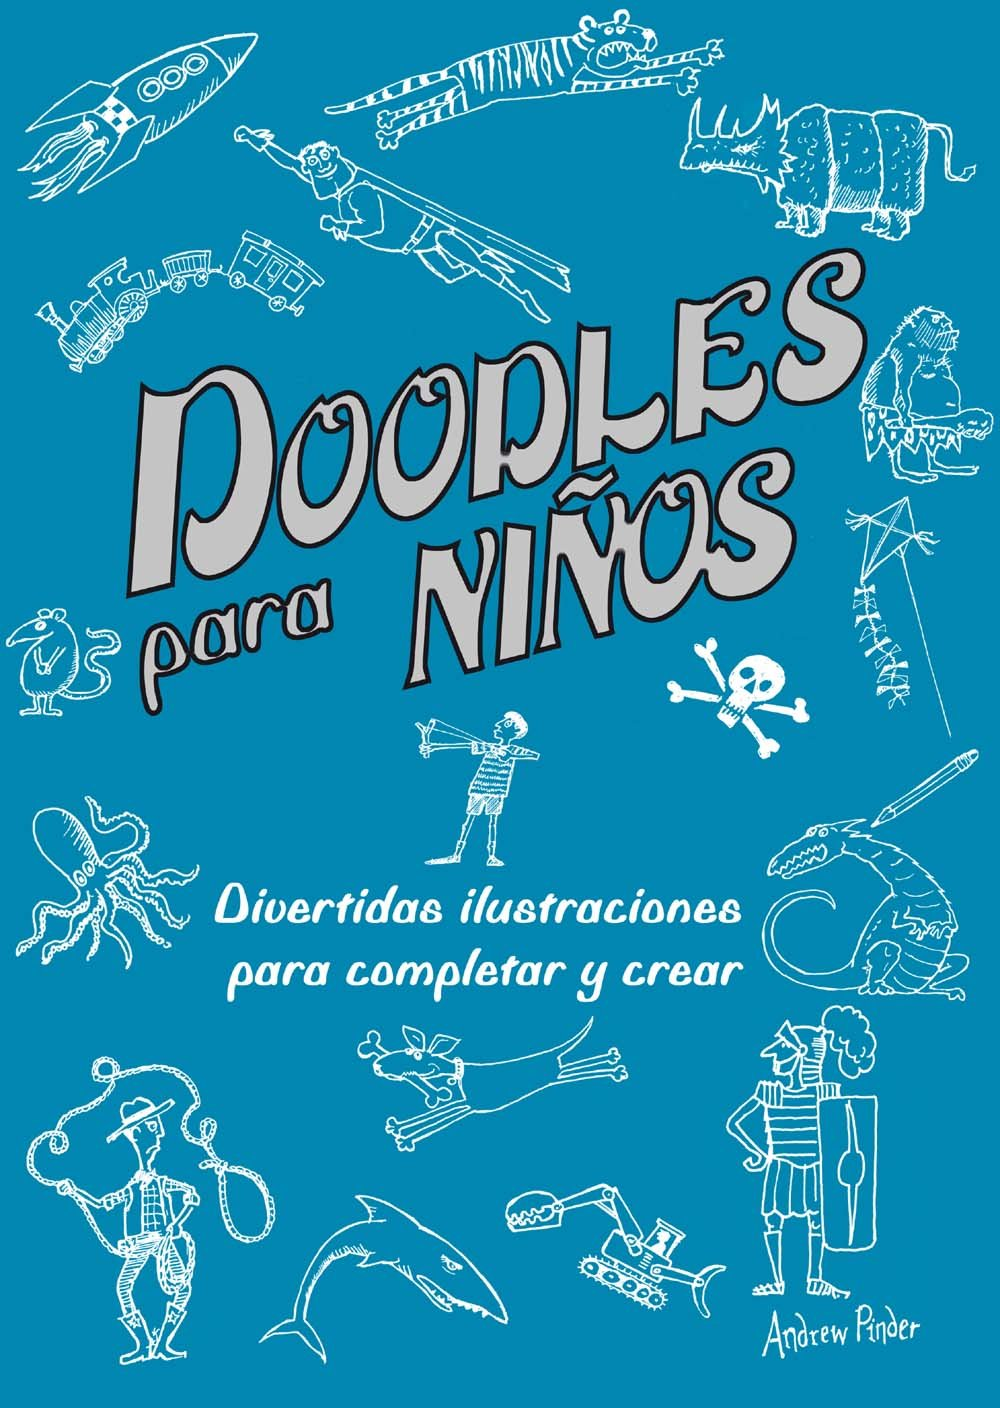 Doodles para ninos (Spanish Edition) ebook